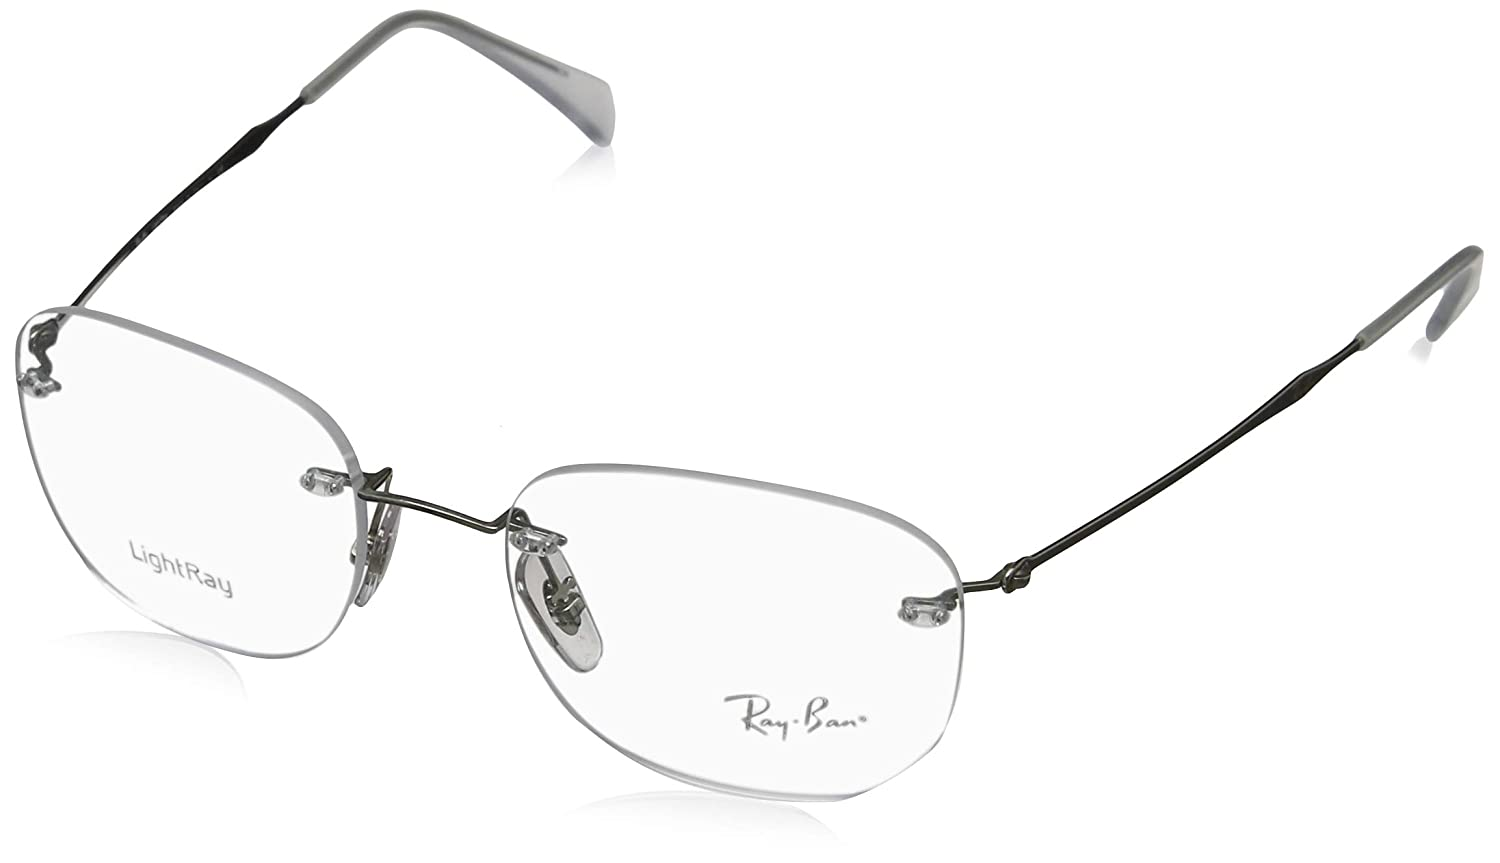 Amazon.com: Ray-Ban RX 8748 1002 plata anteojos de 52 mm ...